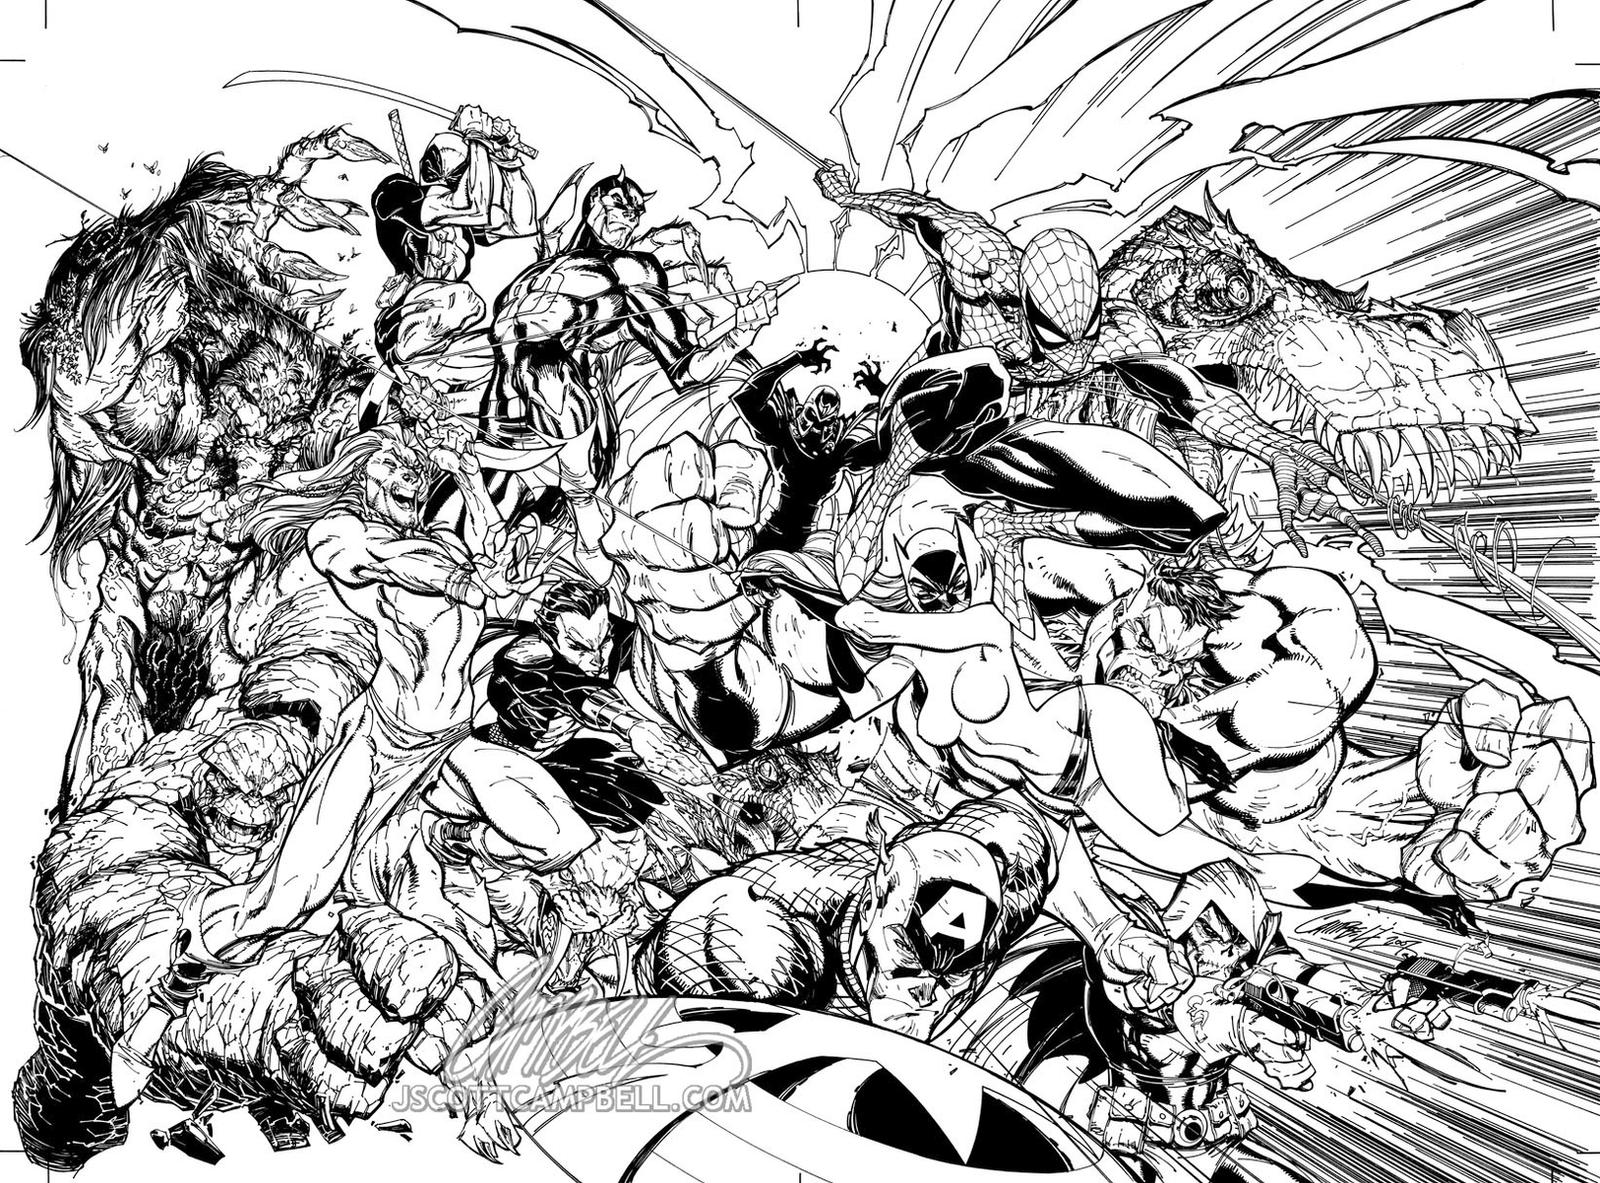 Marvel comics presents inks by j scott campbell on deviantart for Free marvel comic coloring pages